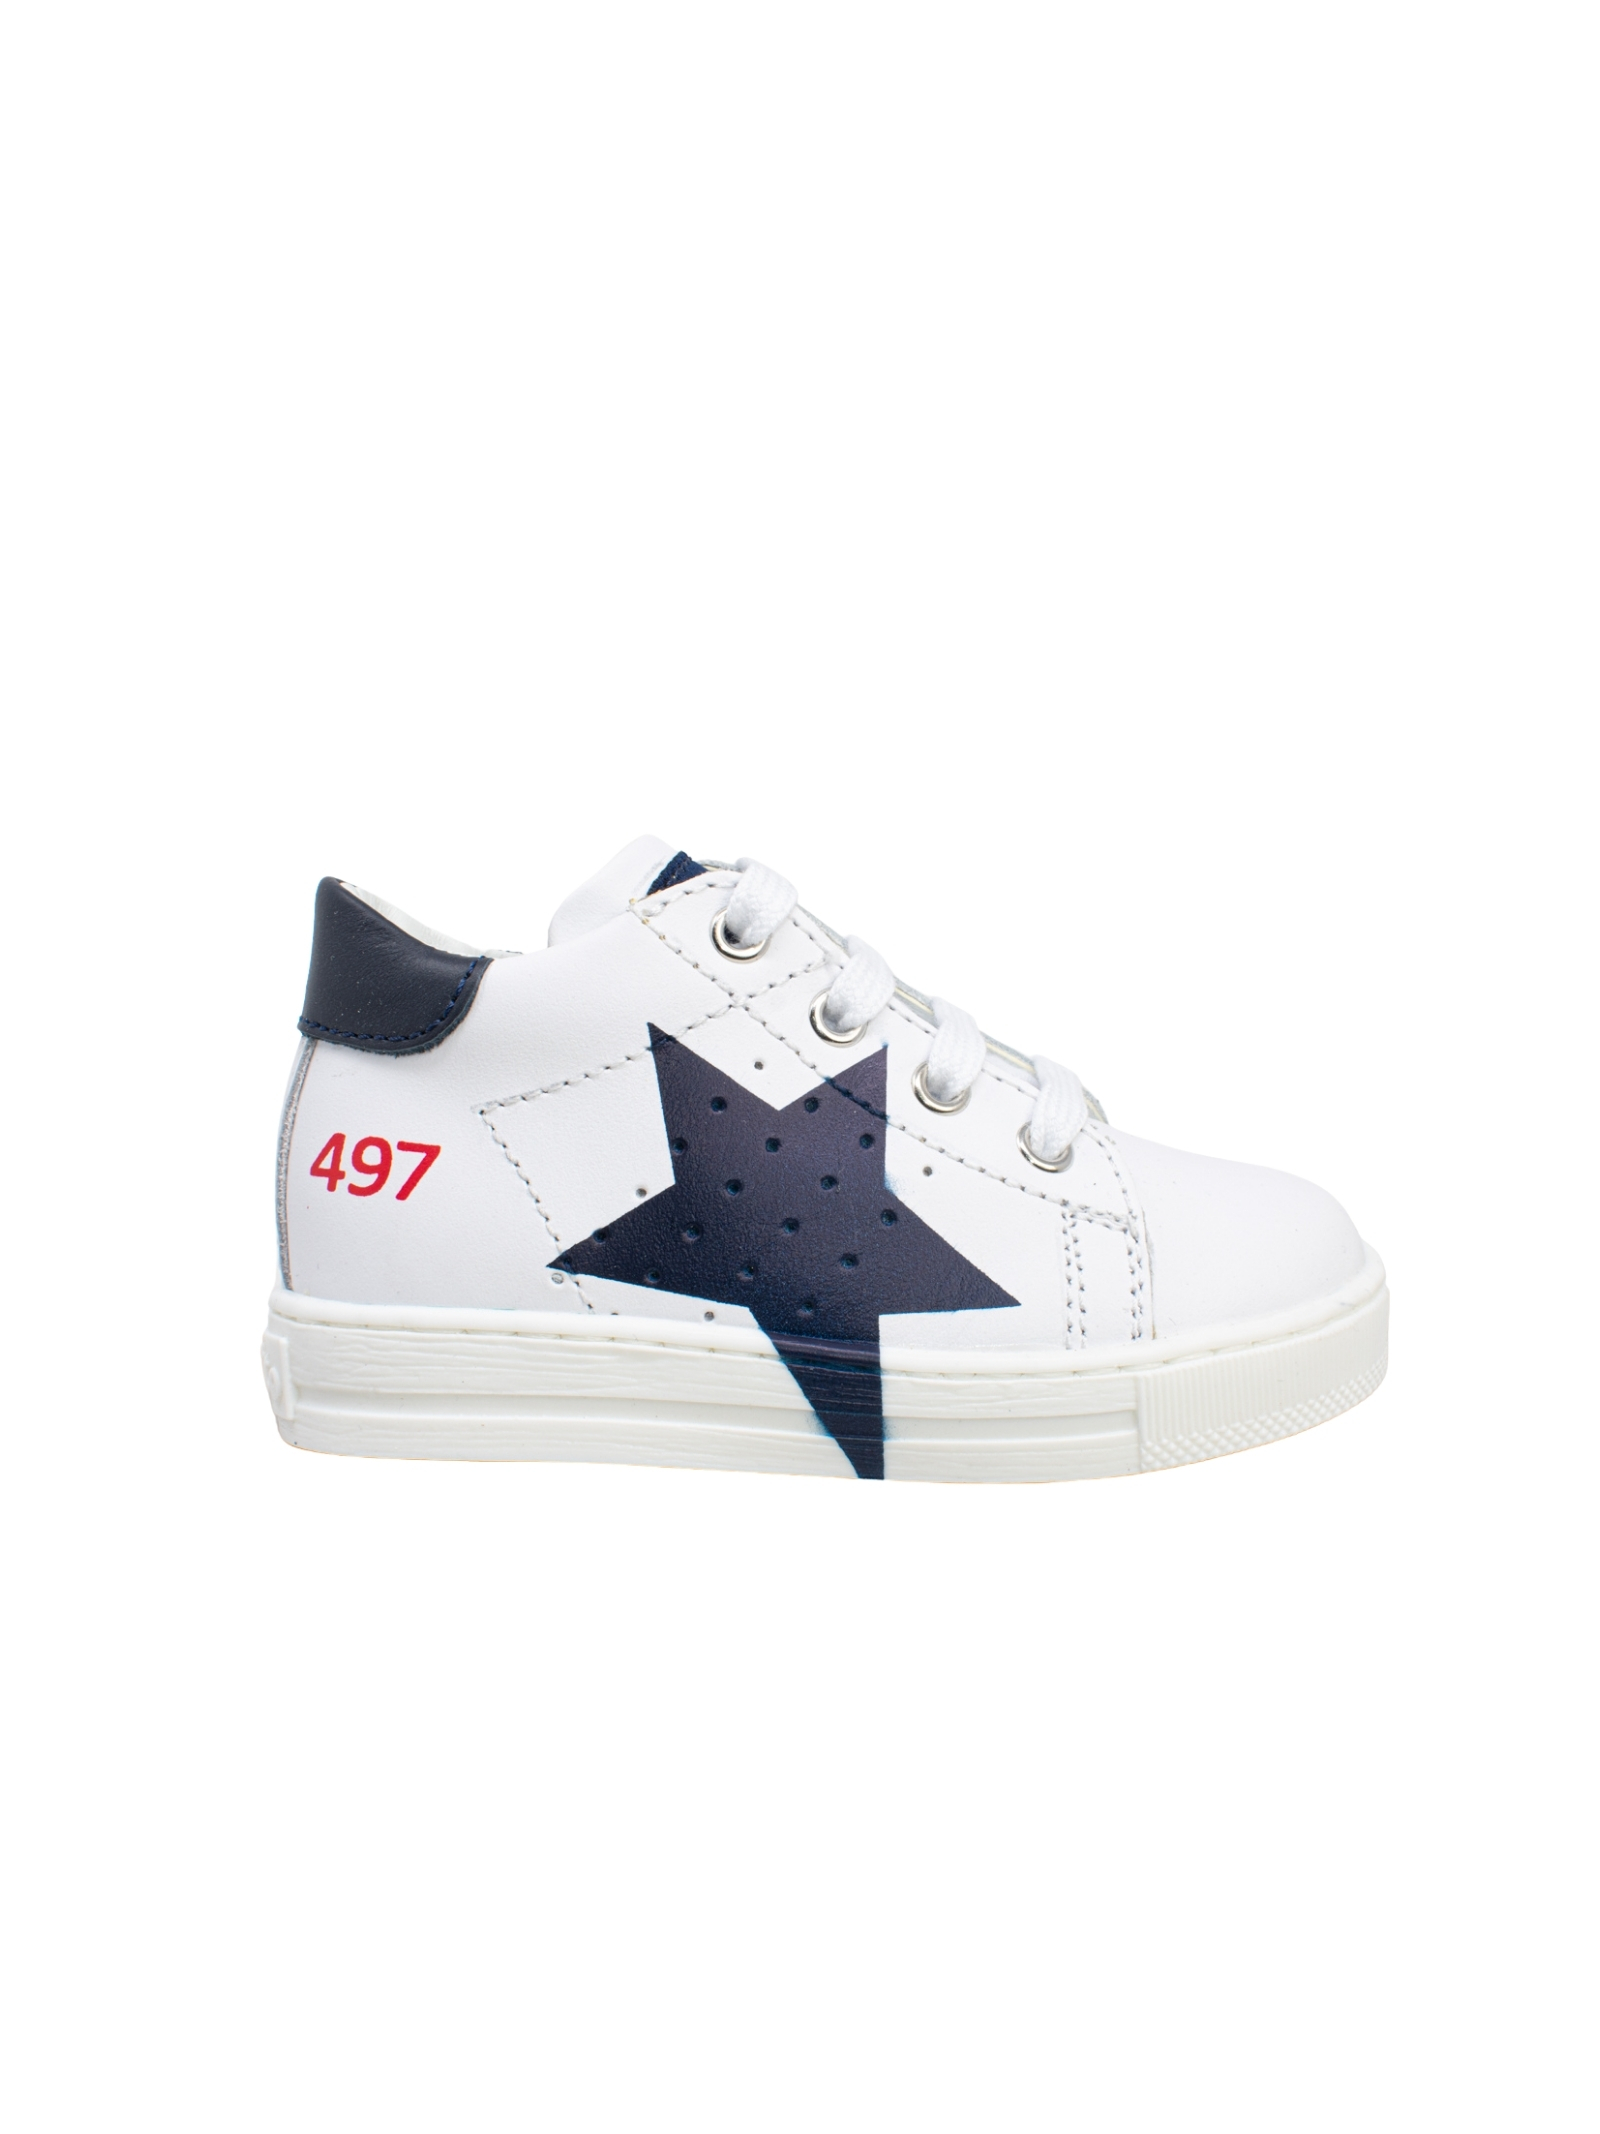 FALCOTTO | Sneakers | 20153311N27